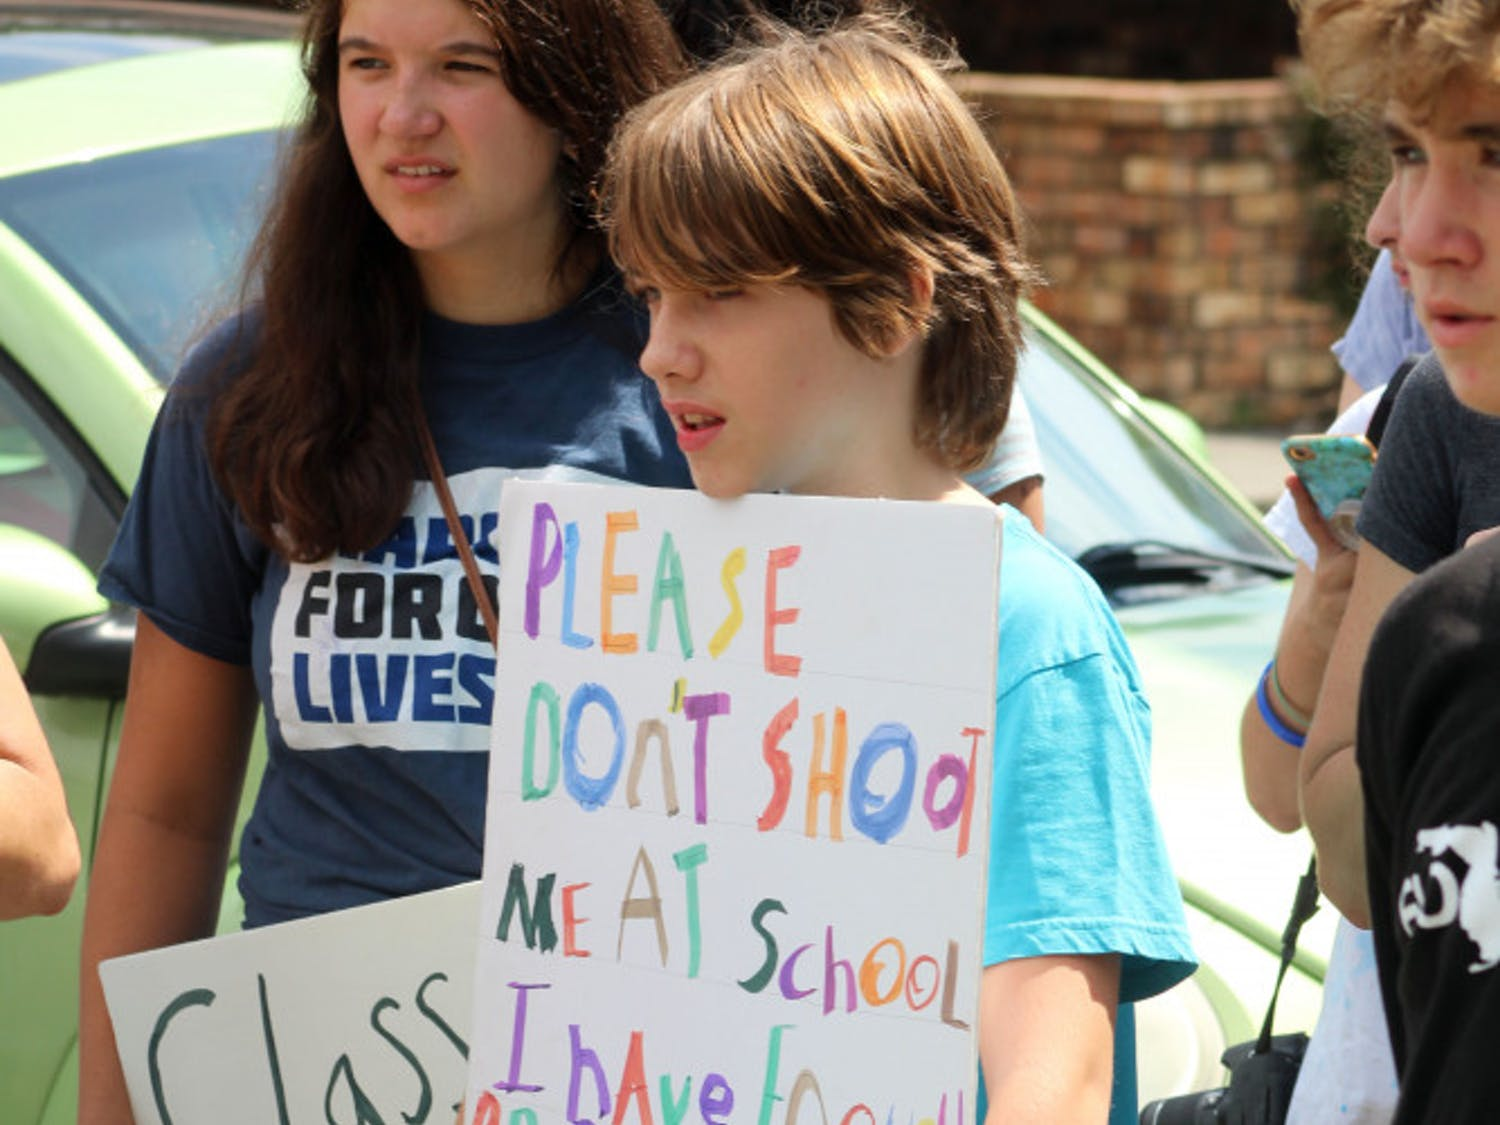 """Children, students, and Gainesville residents rallied alongside survivors of the Parkland school shooting on July 26, 2018 at Congressman Ted Yoho's office. The event was part of the MSD """"Road to Change"""" tour in which students are calling for their local representatives to """"say no"""" to the NRA."""